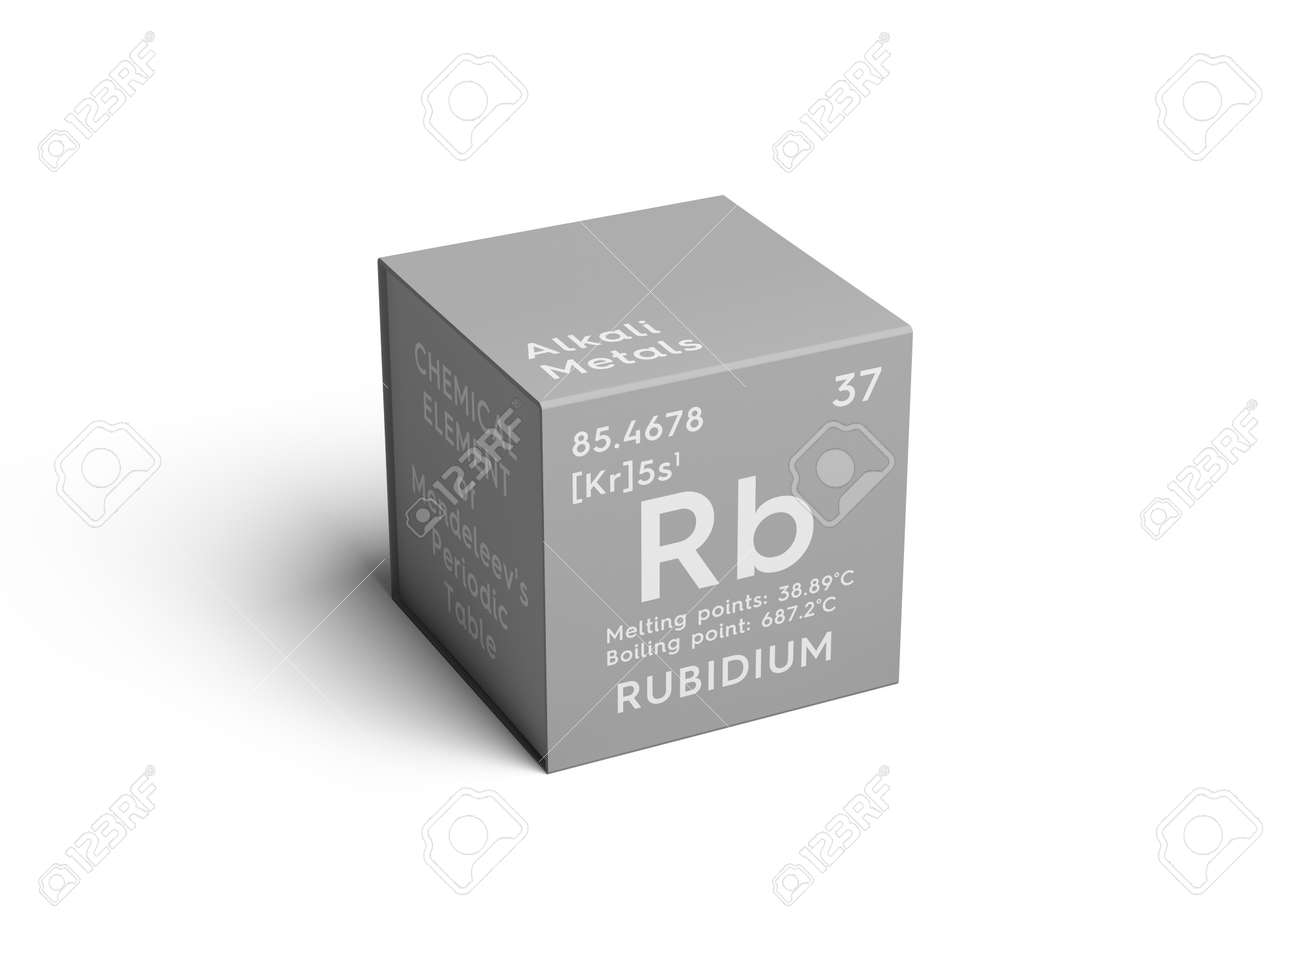 alkali metals chemical element of mendeleevs periodic table rubidium in a square - Periodic Table For Alkali Metals